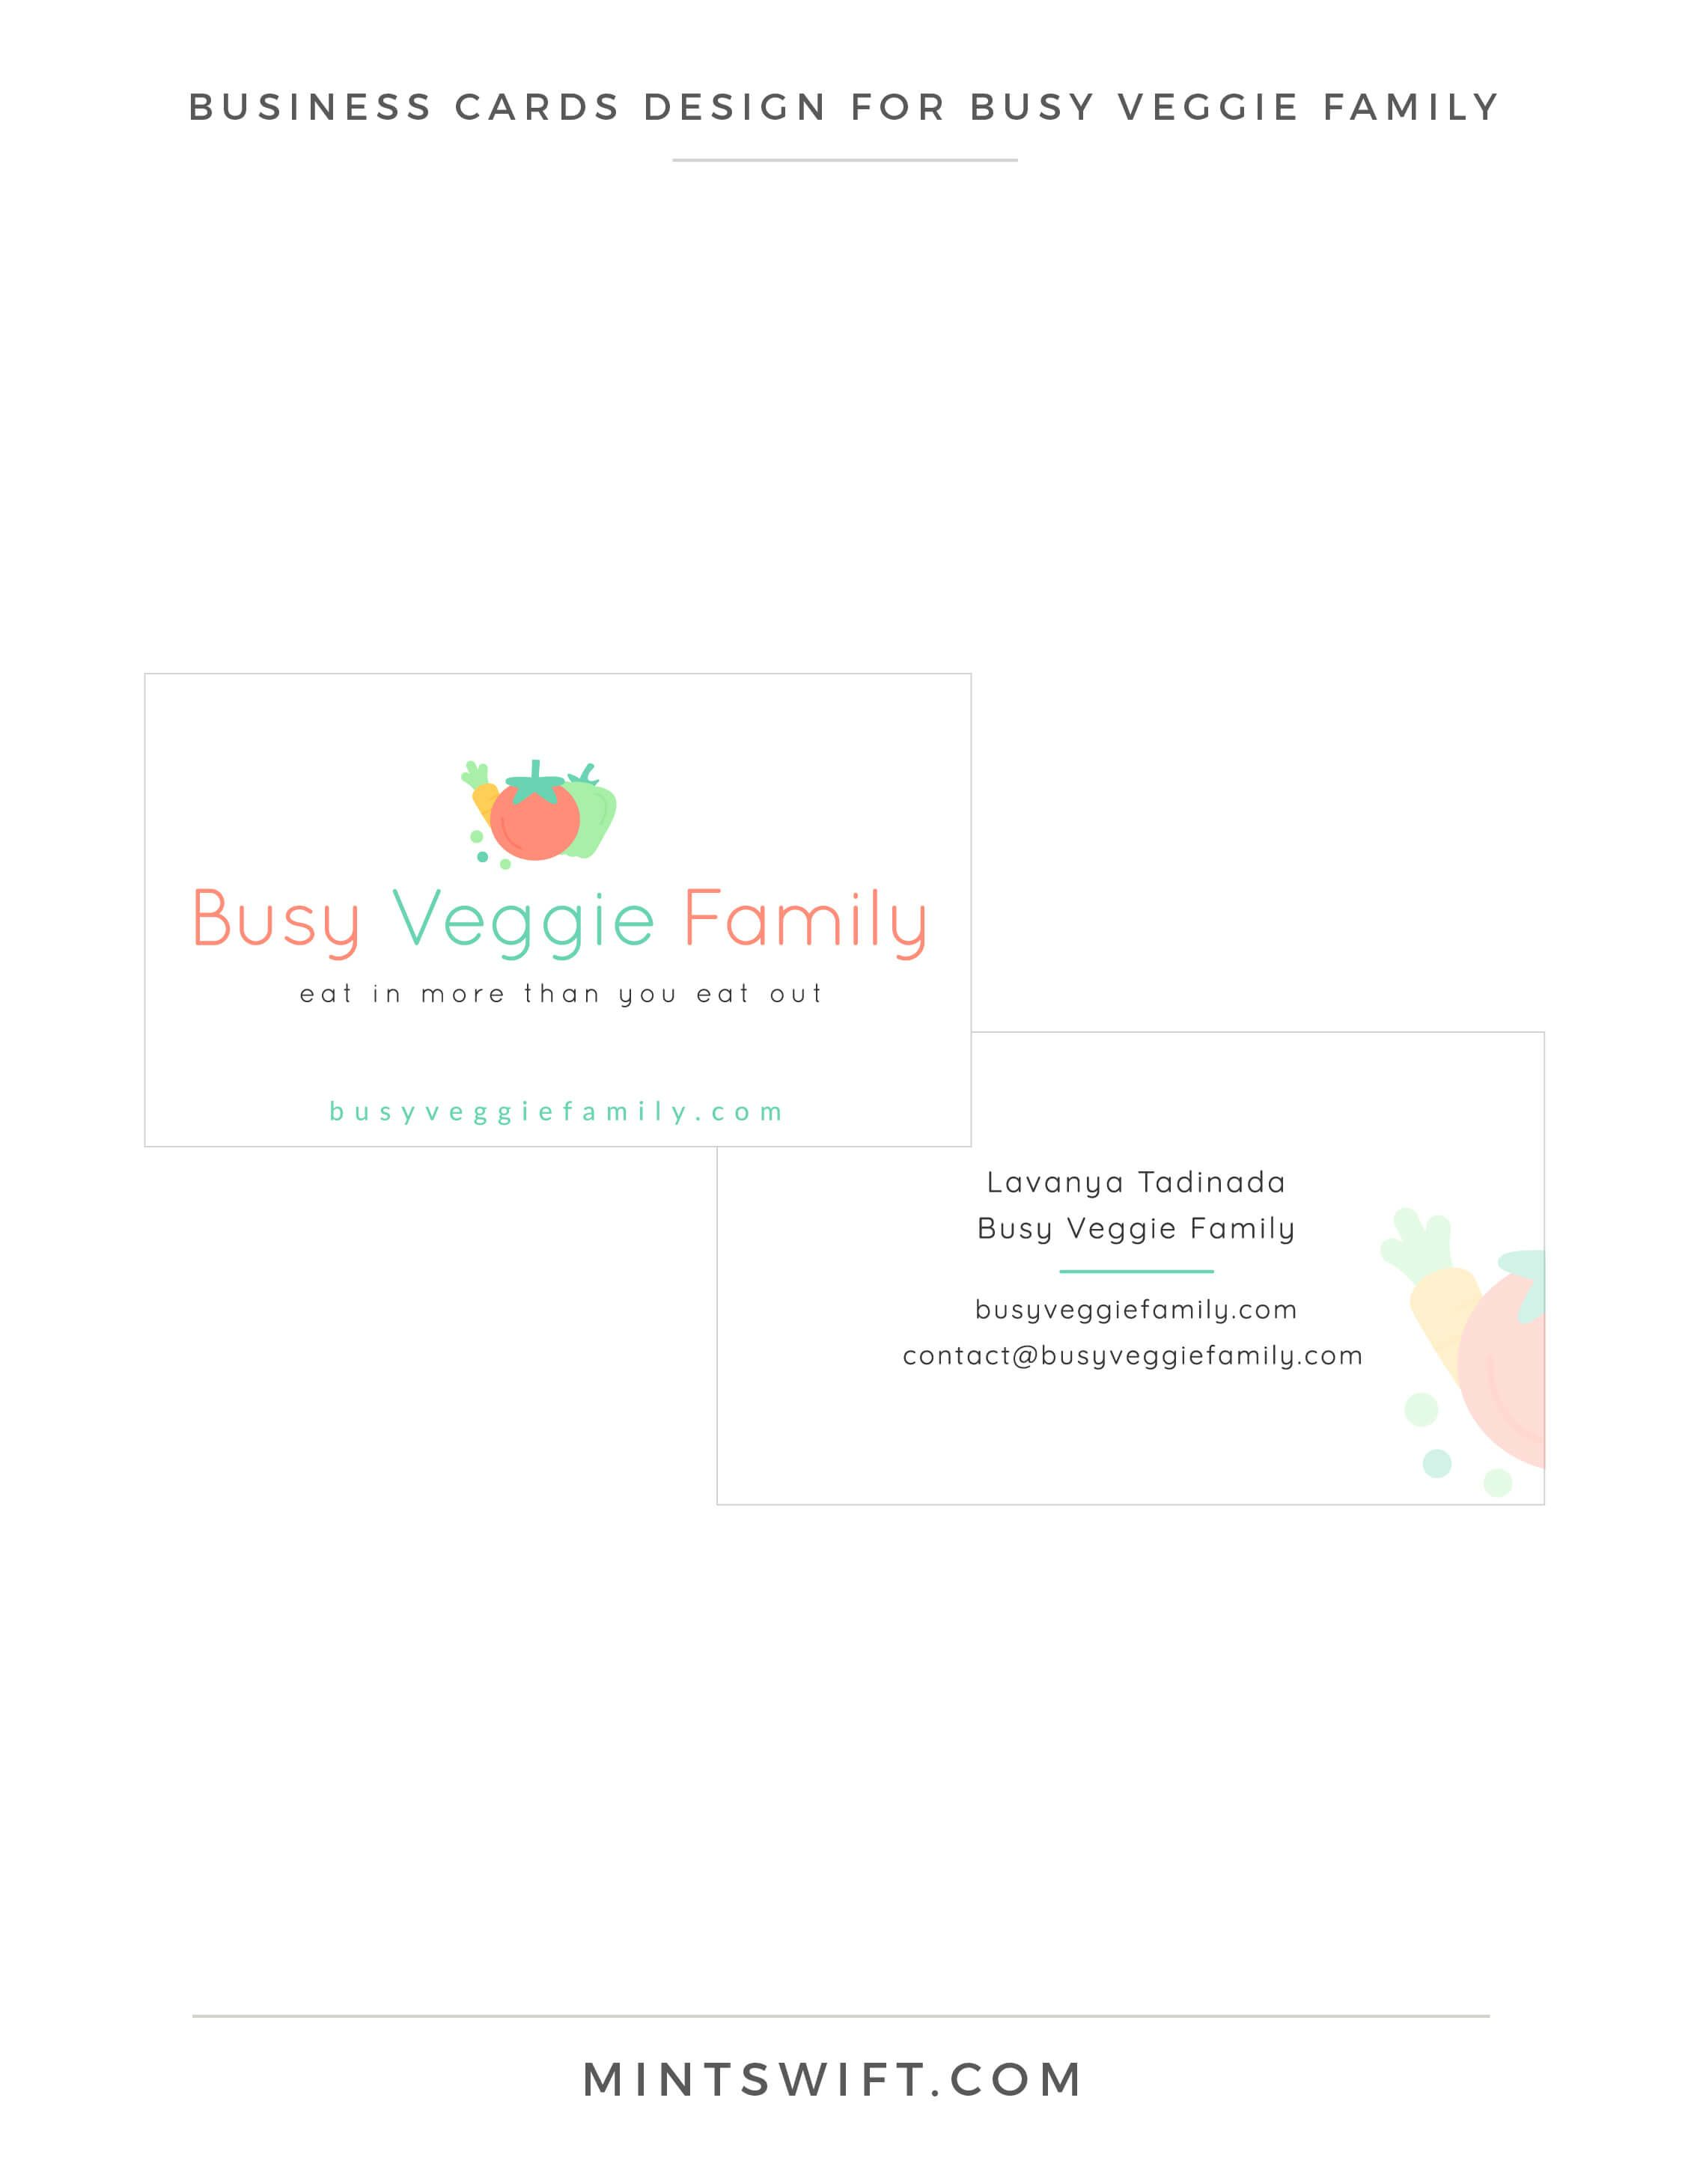 Brand & Website Design for Busy Veggie Family Pinterest